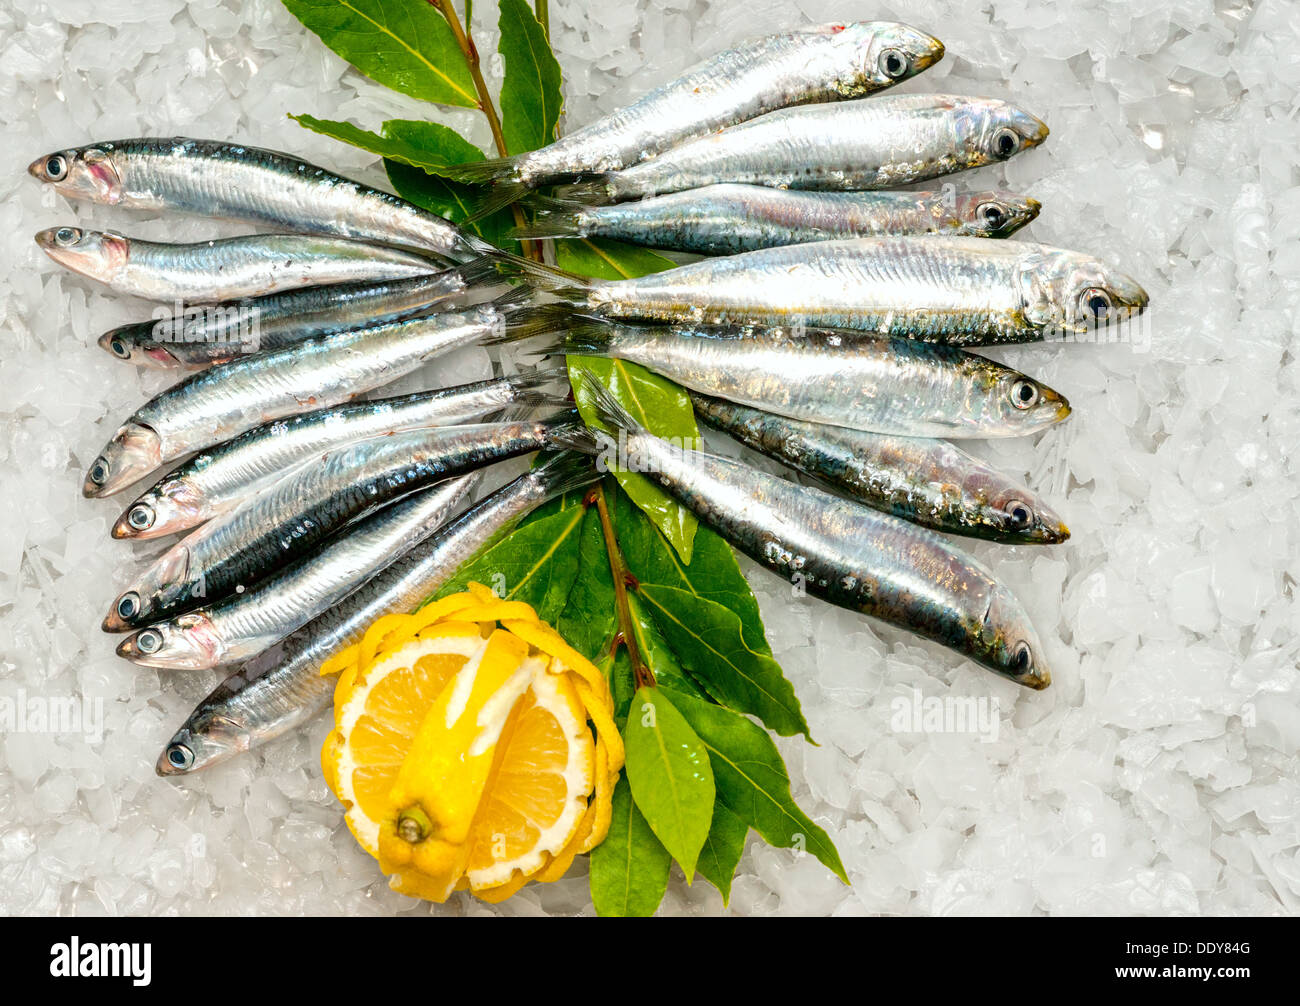 Fresh Sardines and Anchovies on ice. Stock Photo